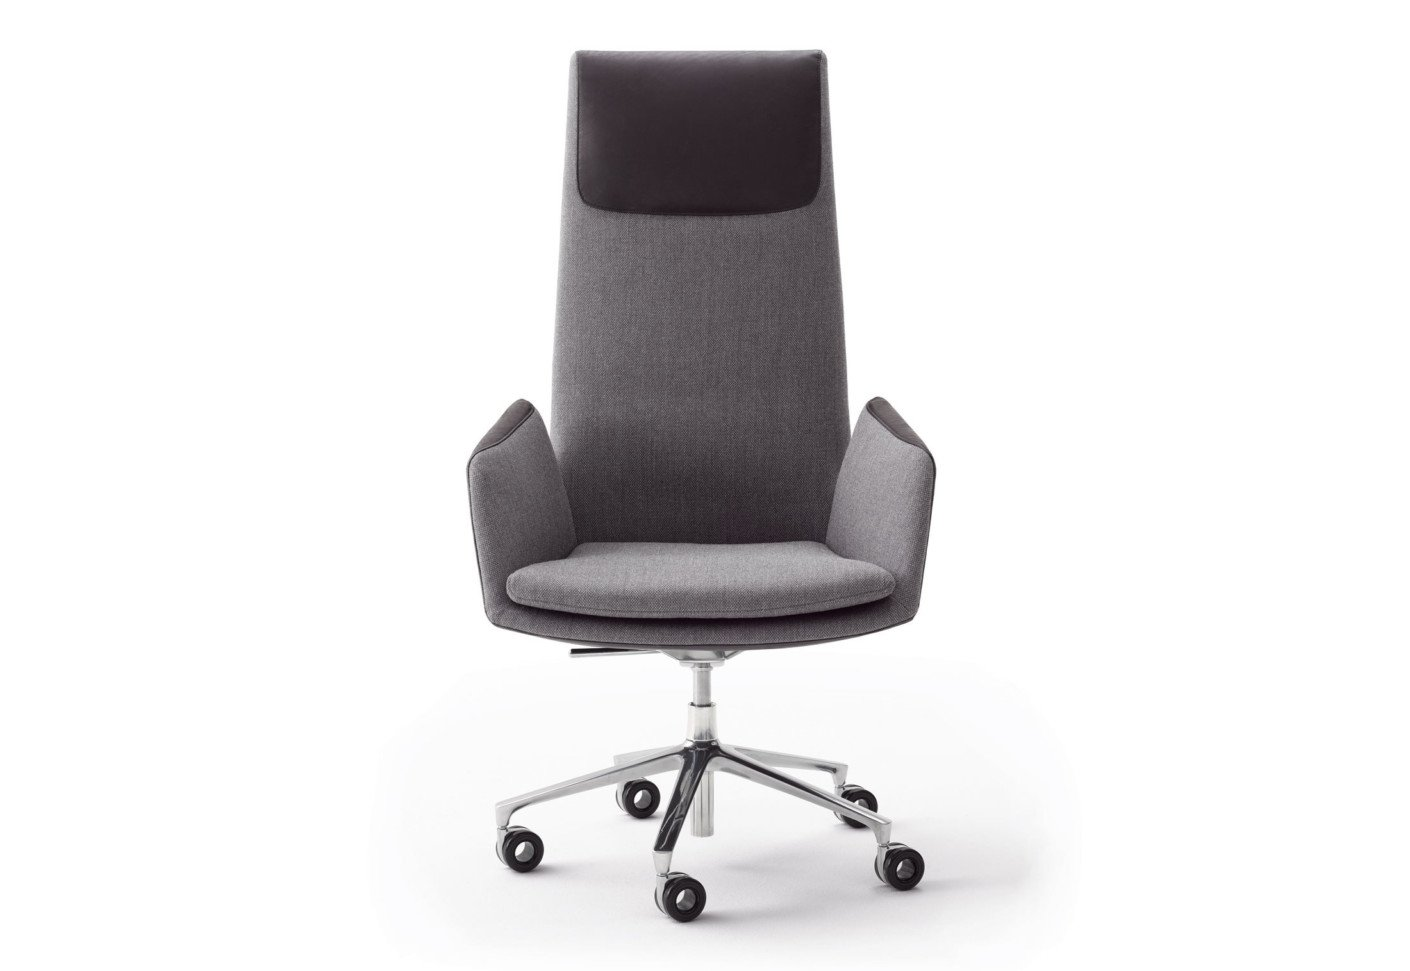 Cordia Plus Office Chair by Jehs + Laub for COR